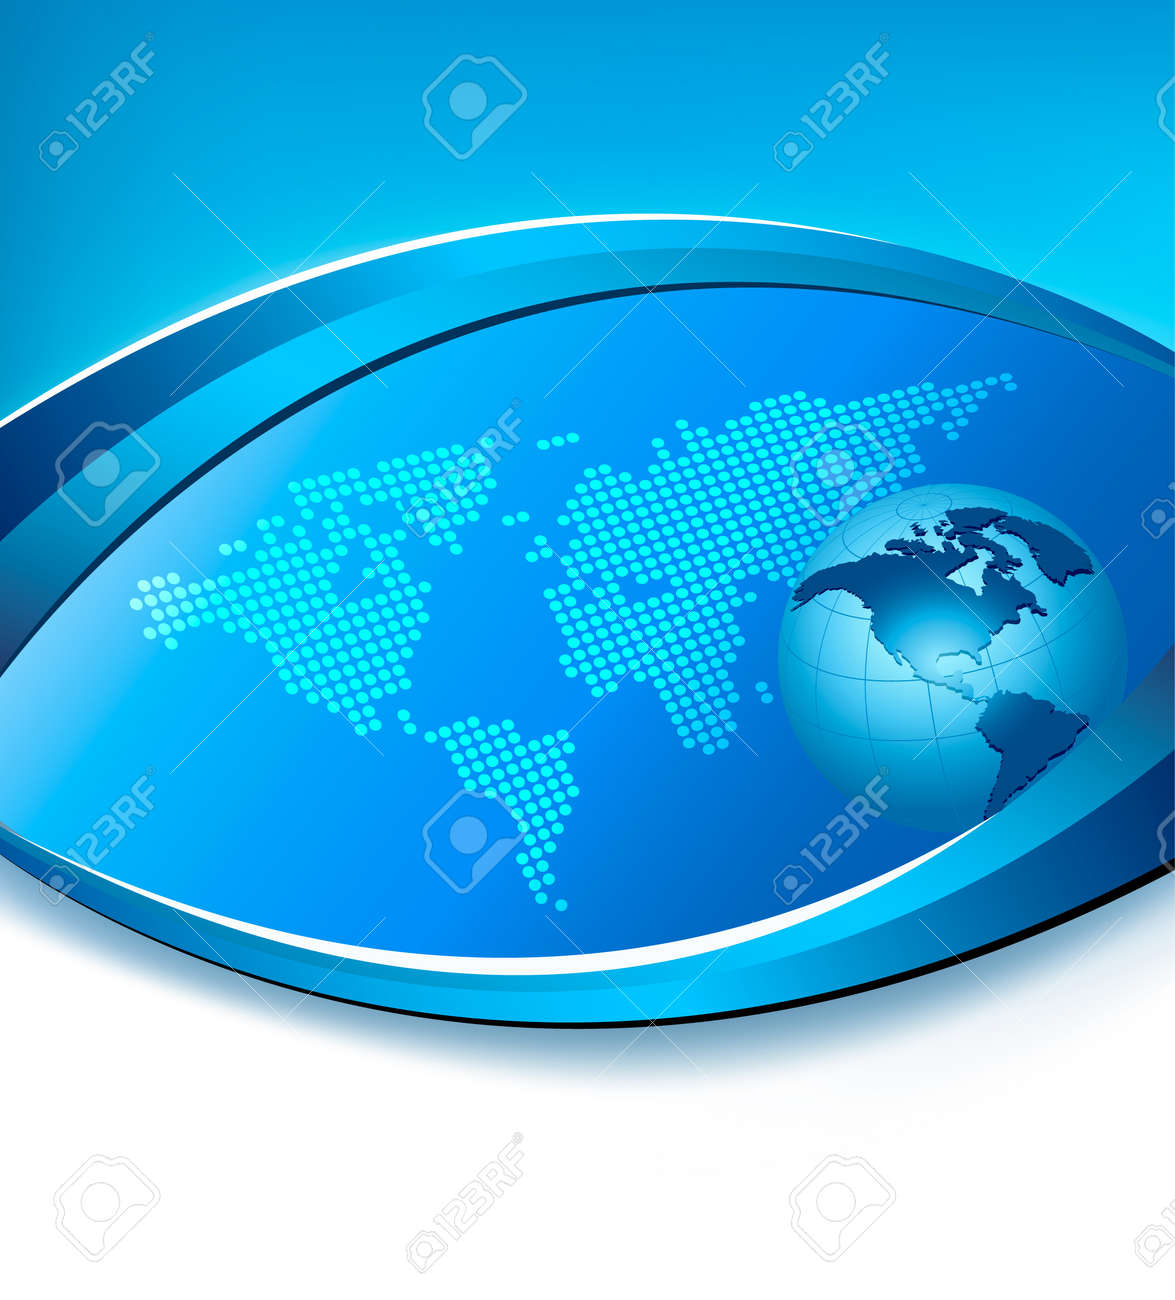 Business elegant abstract background with globe  Vector illustration Stock Vector - 13409784